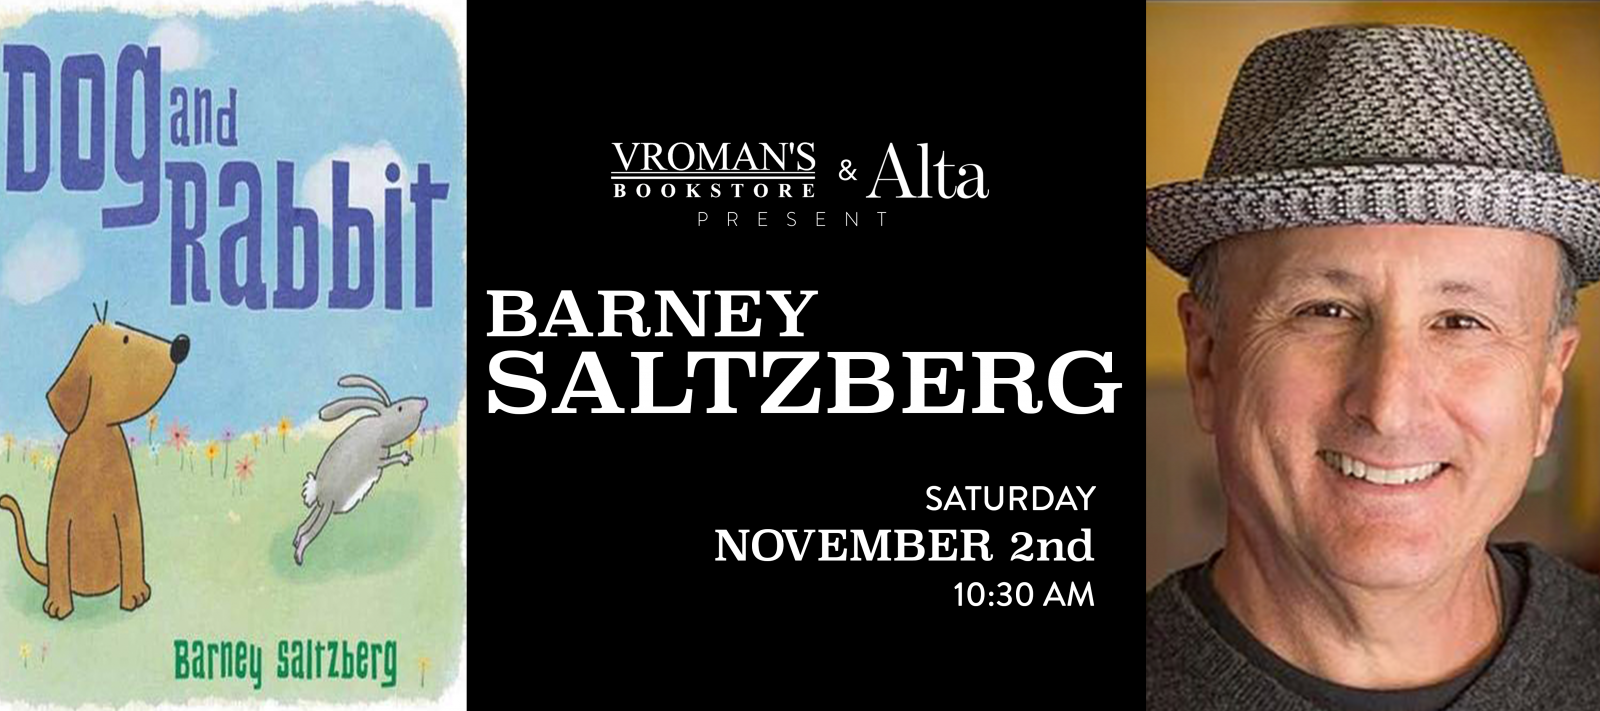 book signing with Barney Saltzberg Saturday Nov 2 at 10:30am